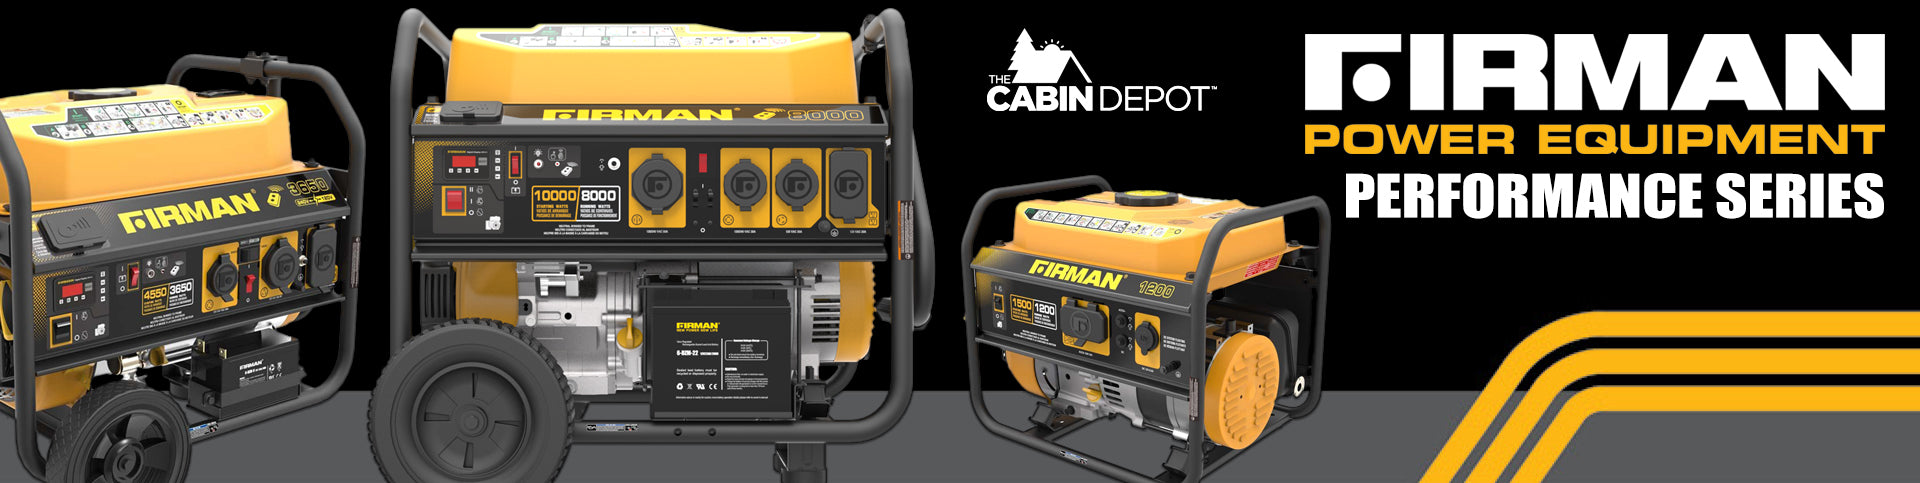 Firman Generator Performance The Cabin Depot ™ Canada